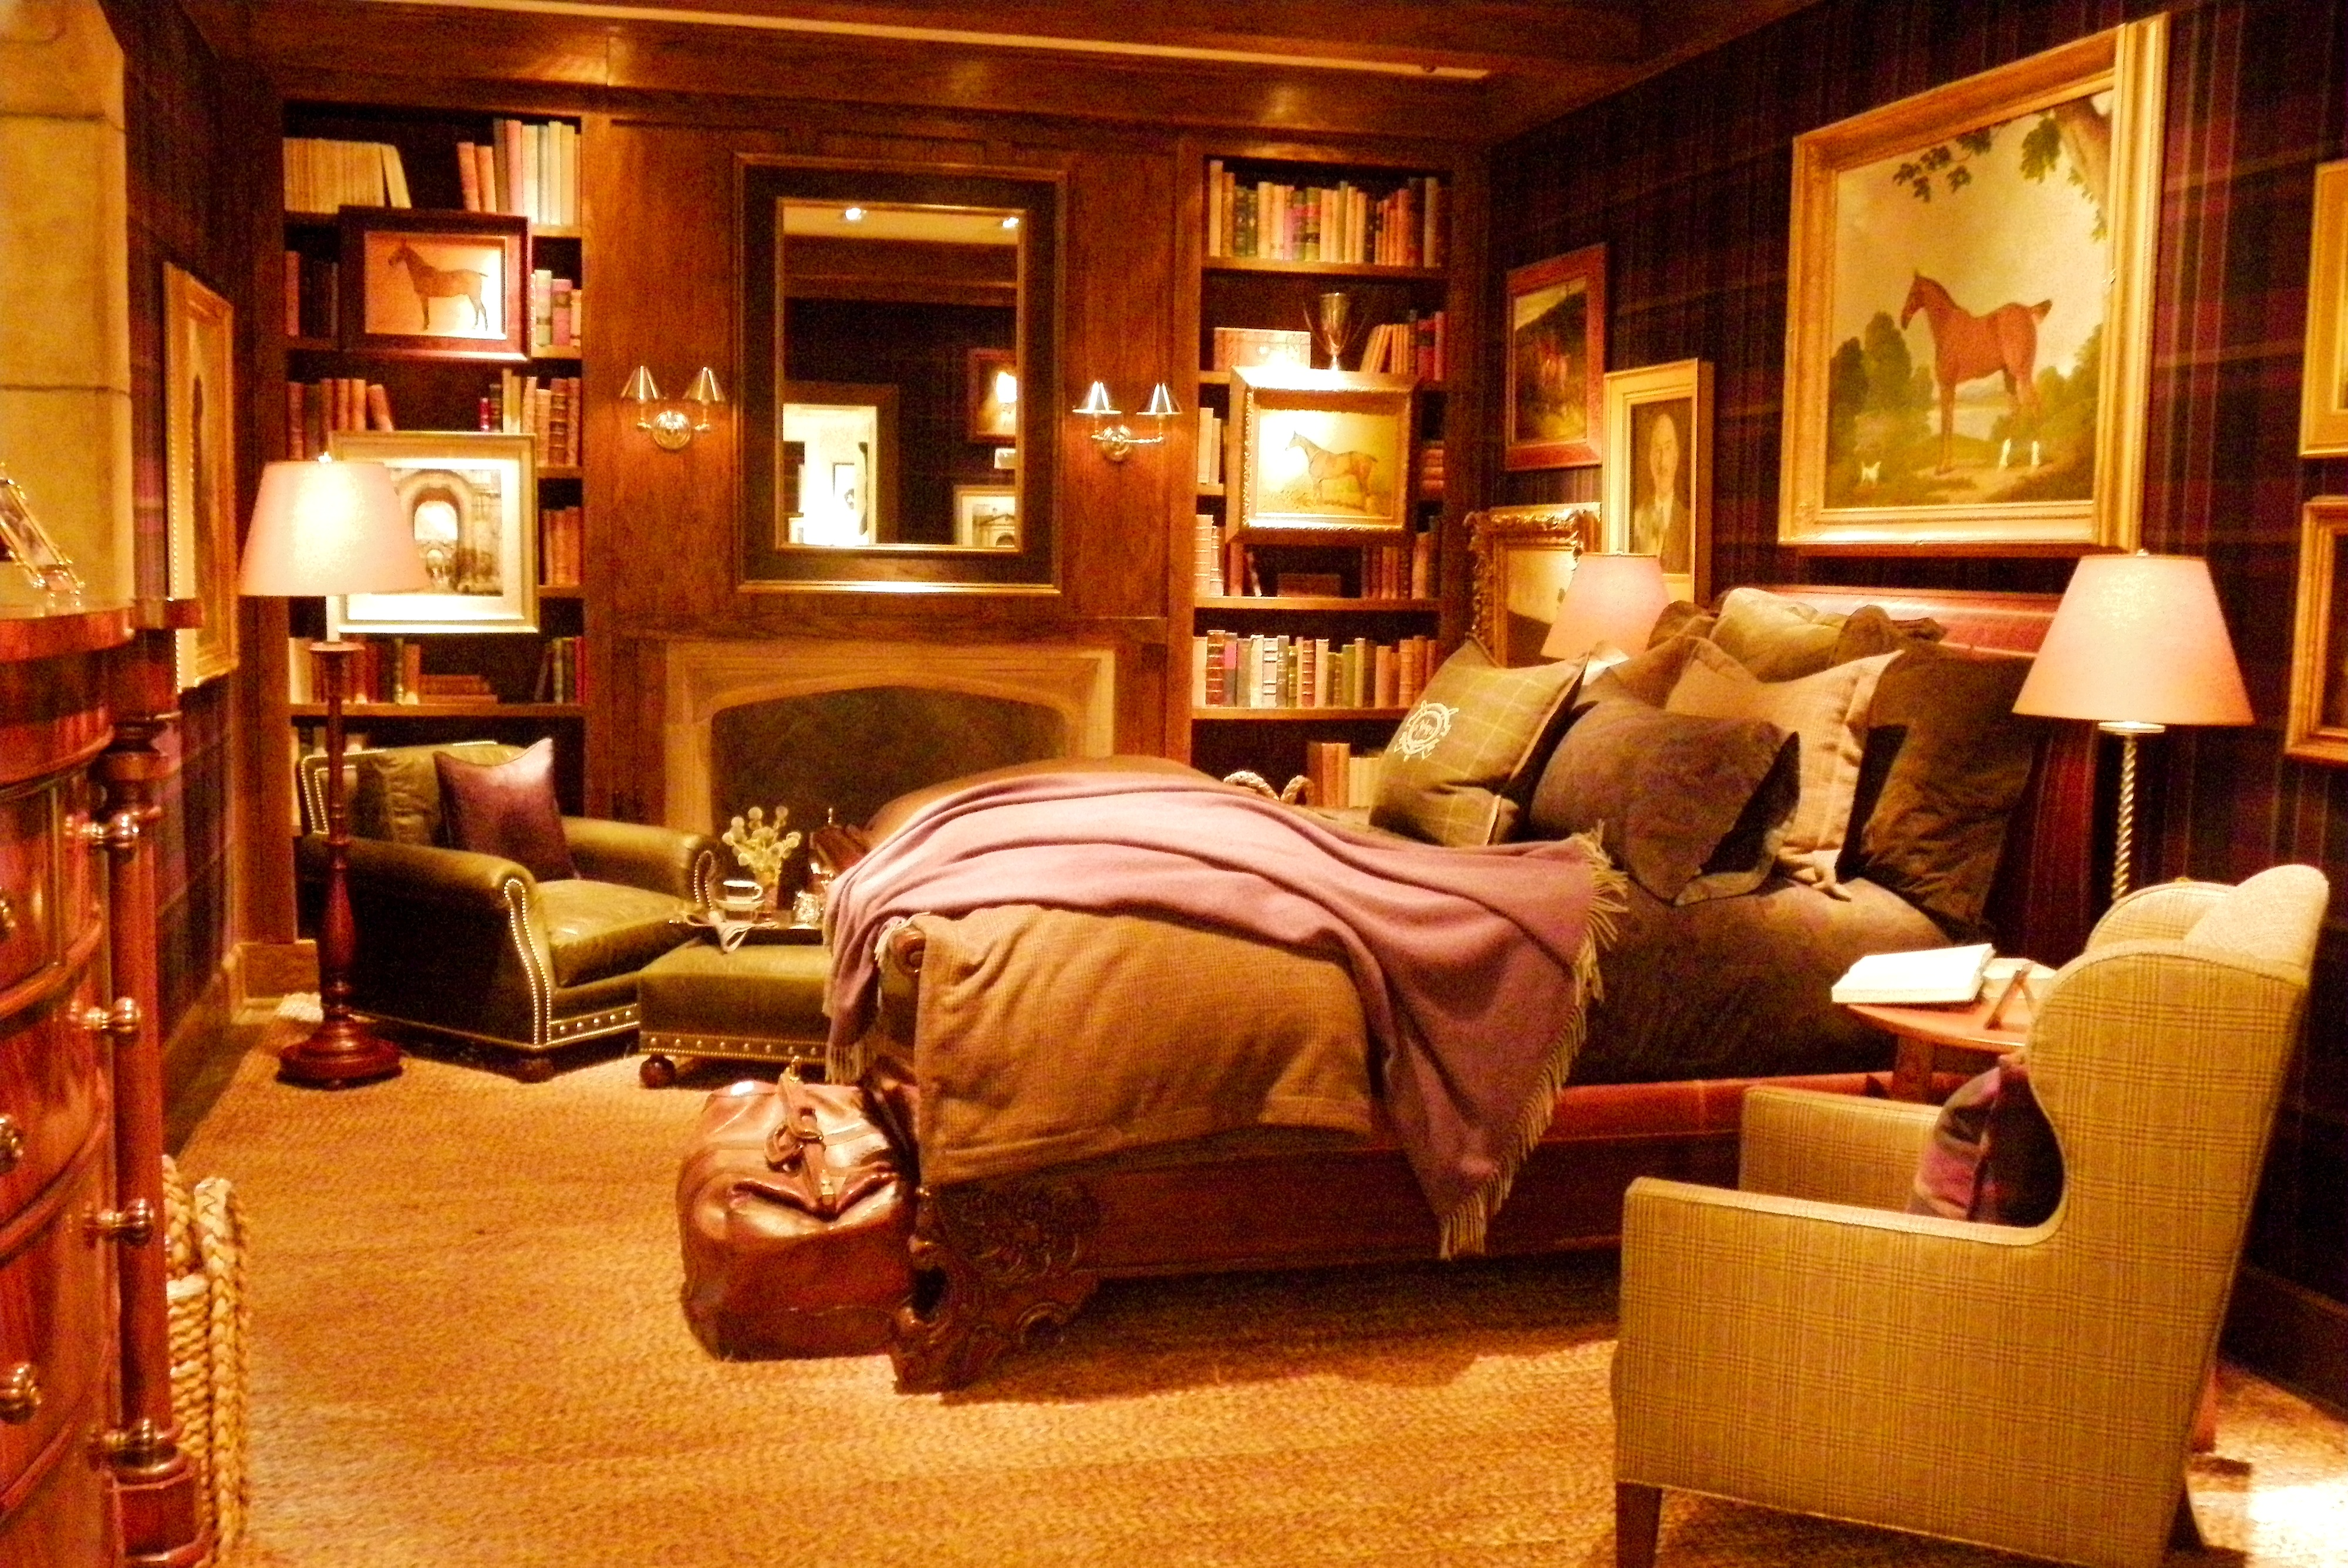 Ralph lauren home design in ny styled by claudia for Ralph lauren home designs